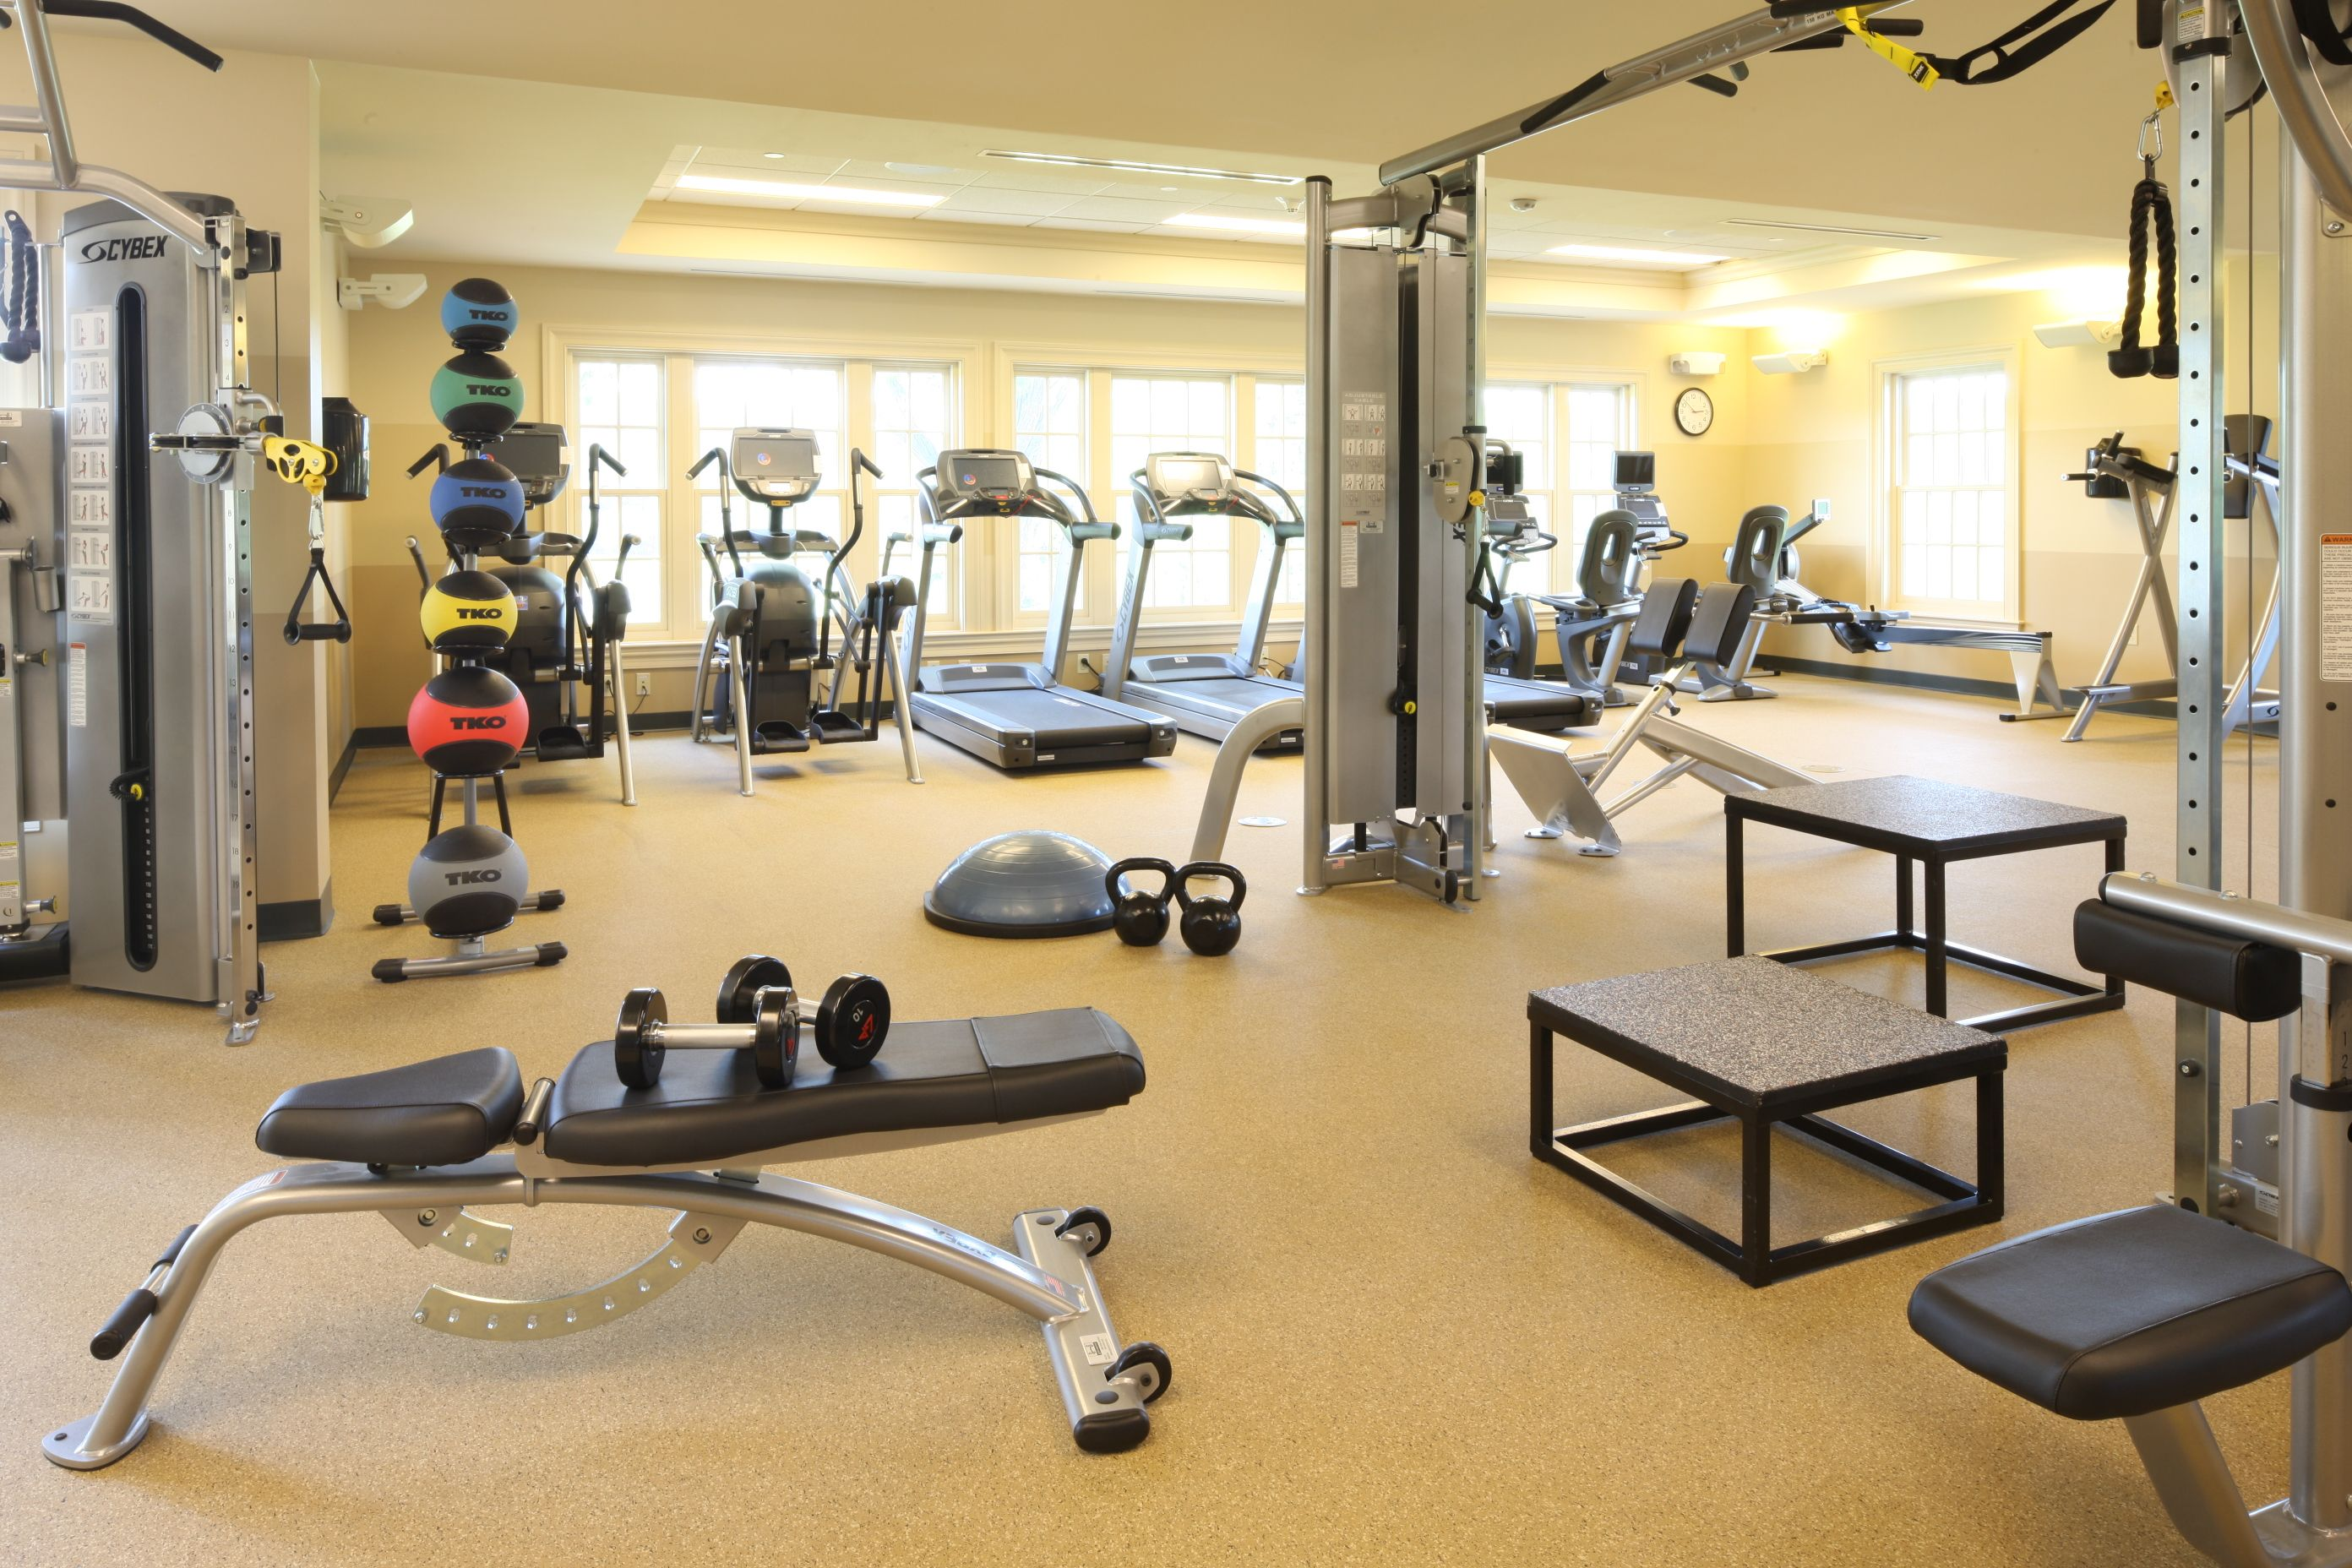 Scarsdale Country Club In Scarsdale New York Has A New Highly Sought After Fitness Center Thanks To Recent Renovations Studio Funcional